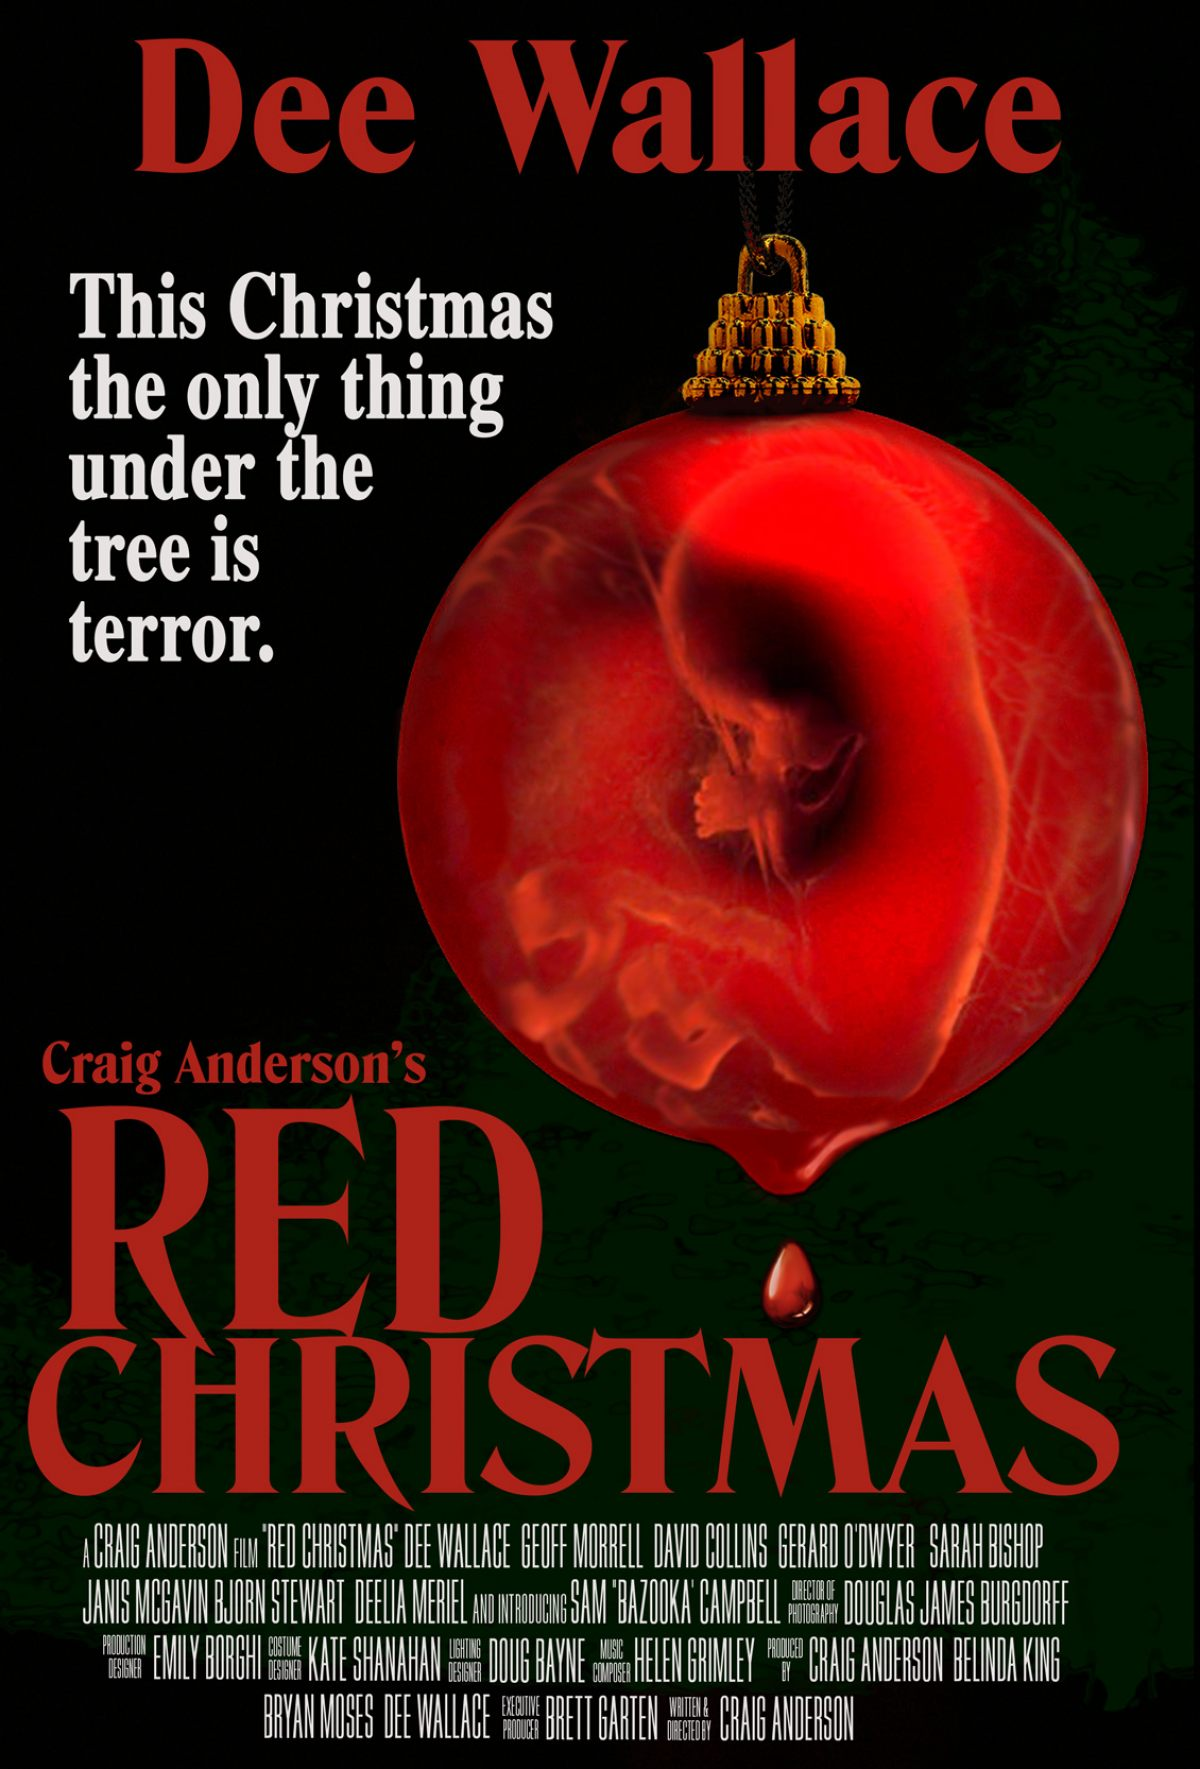 Red_Christmas_poster_1200_1769_81_s